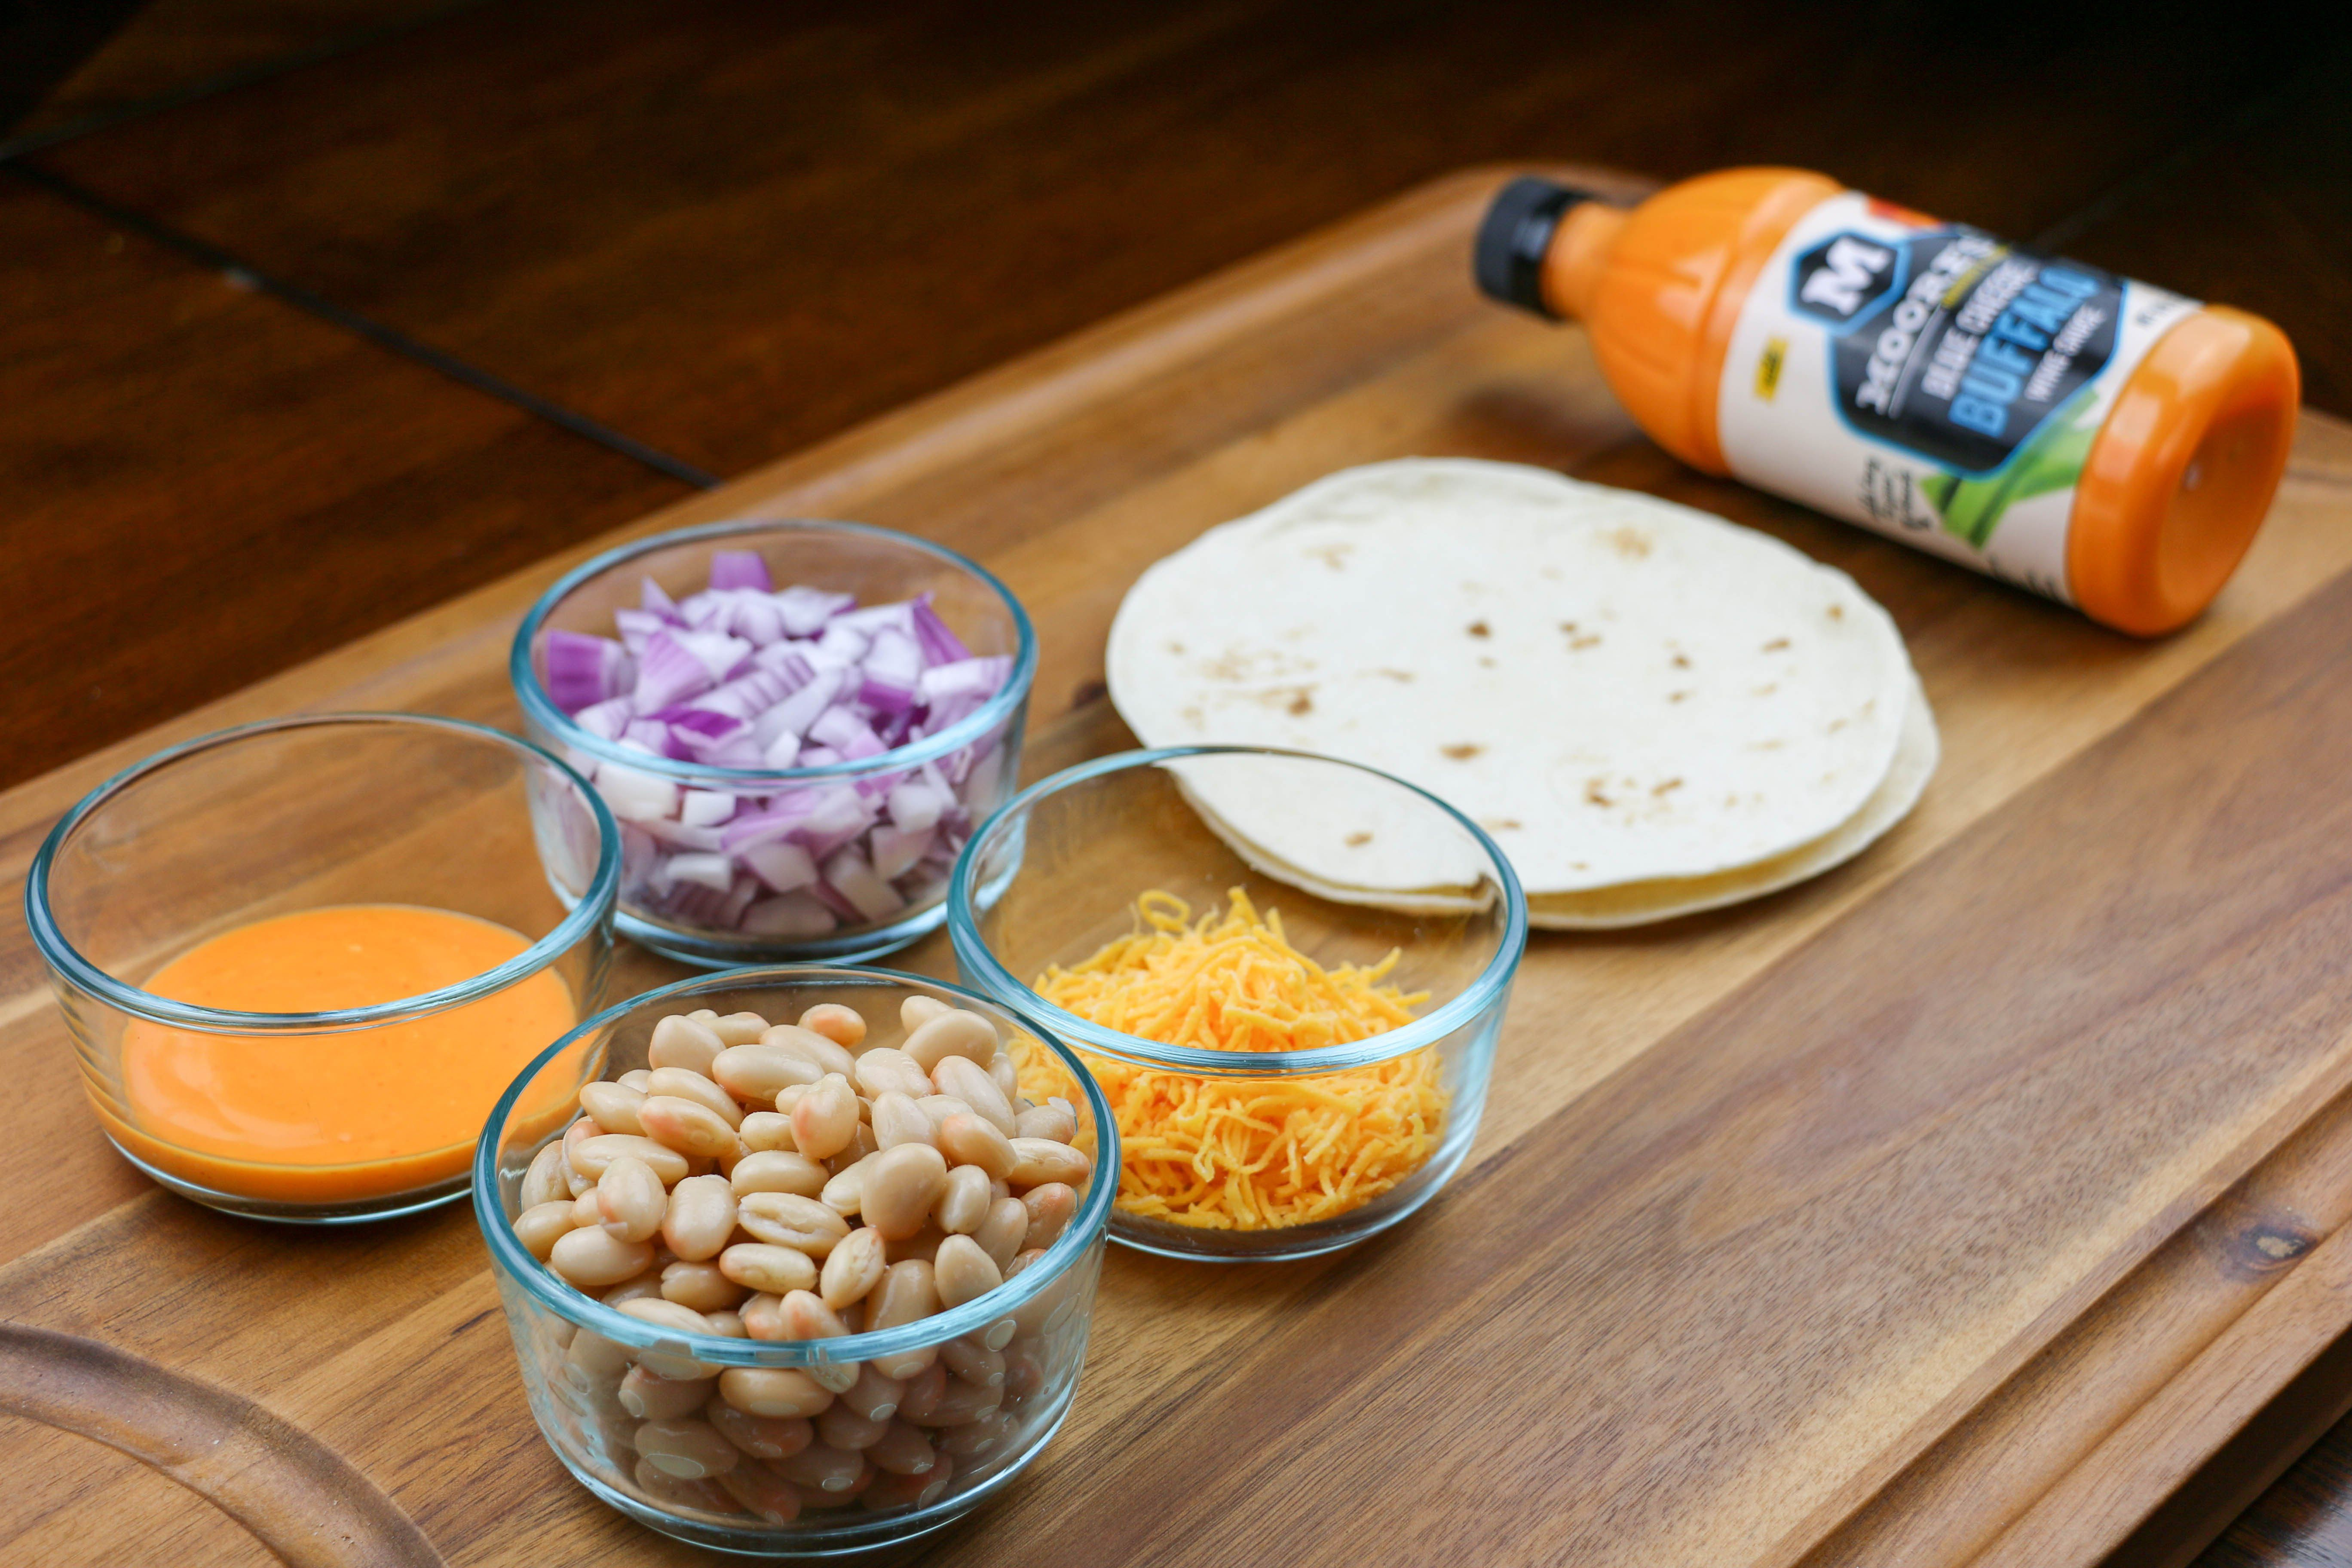 If you're like me and are always rushing to cook, then you're going to love these Buffalo White Bean Quesadillas. They're super easy to make and done in minutes giving you more time to spend with friends and family.